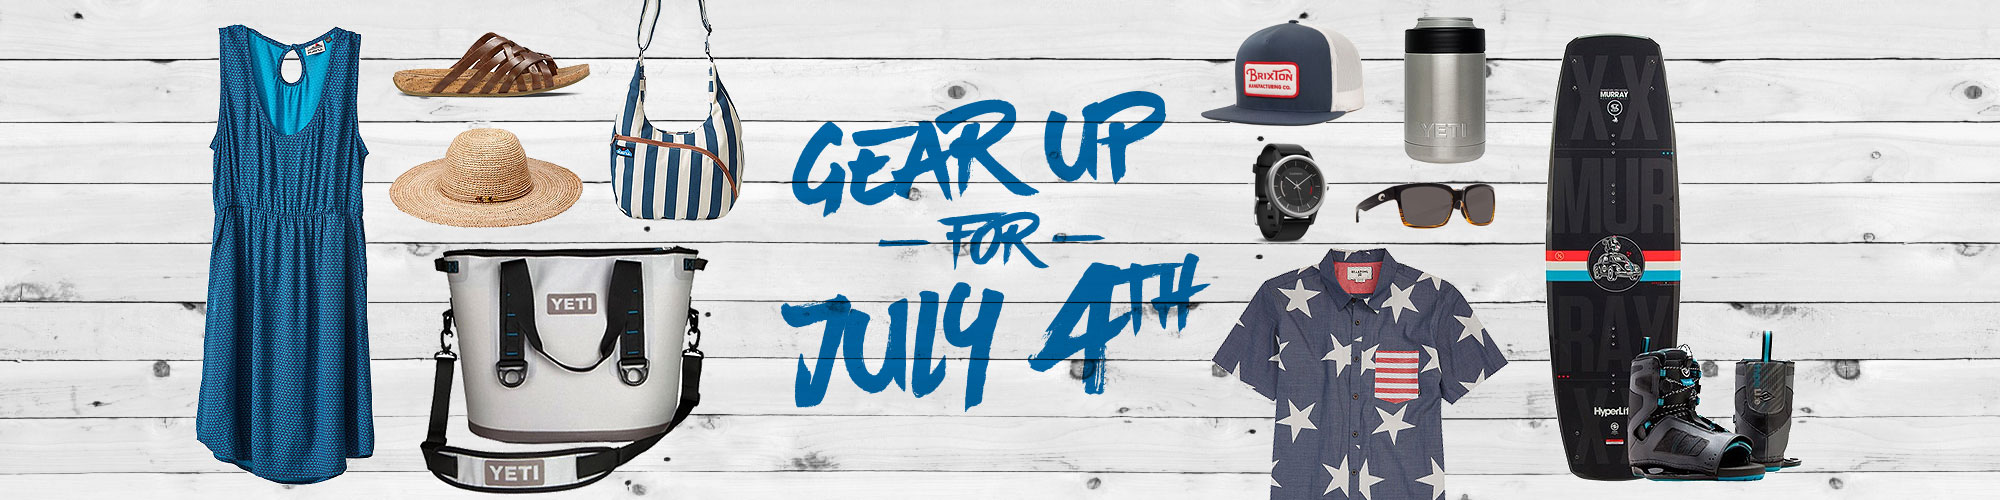 Gear up for July 4th